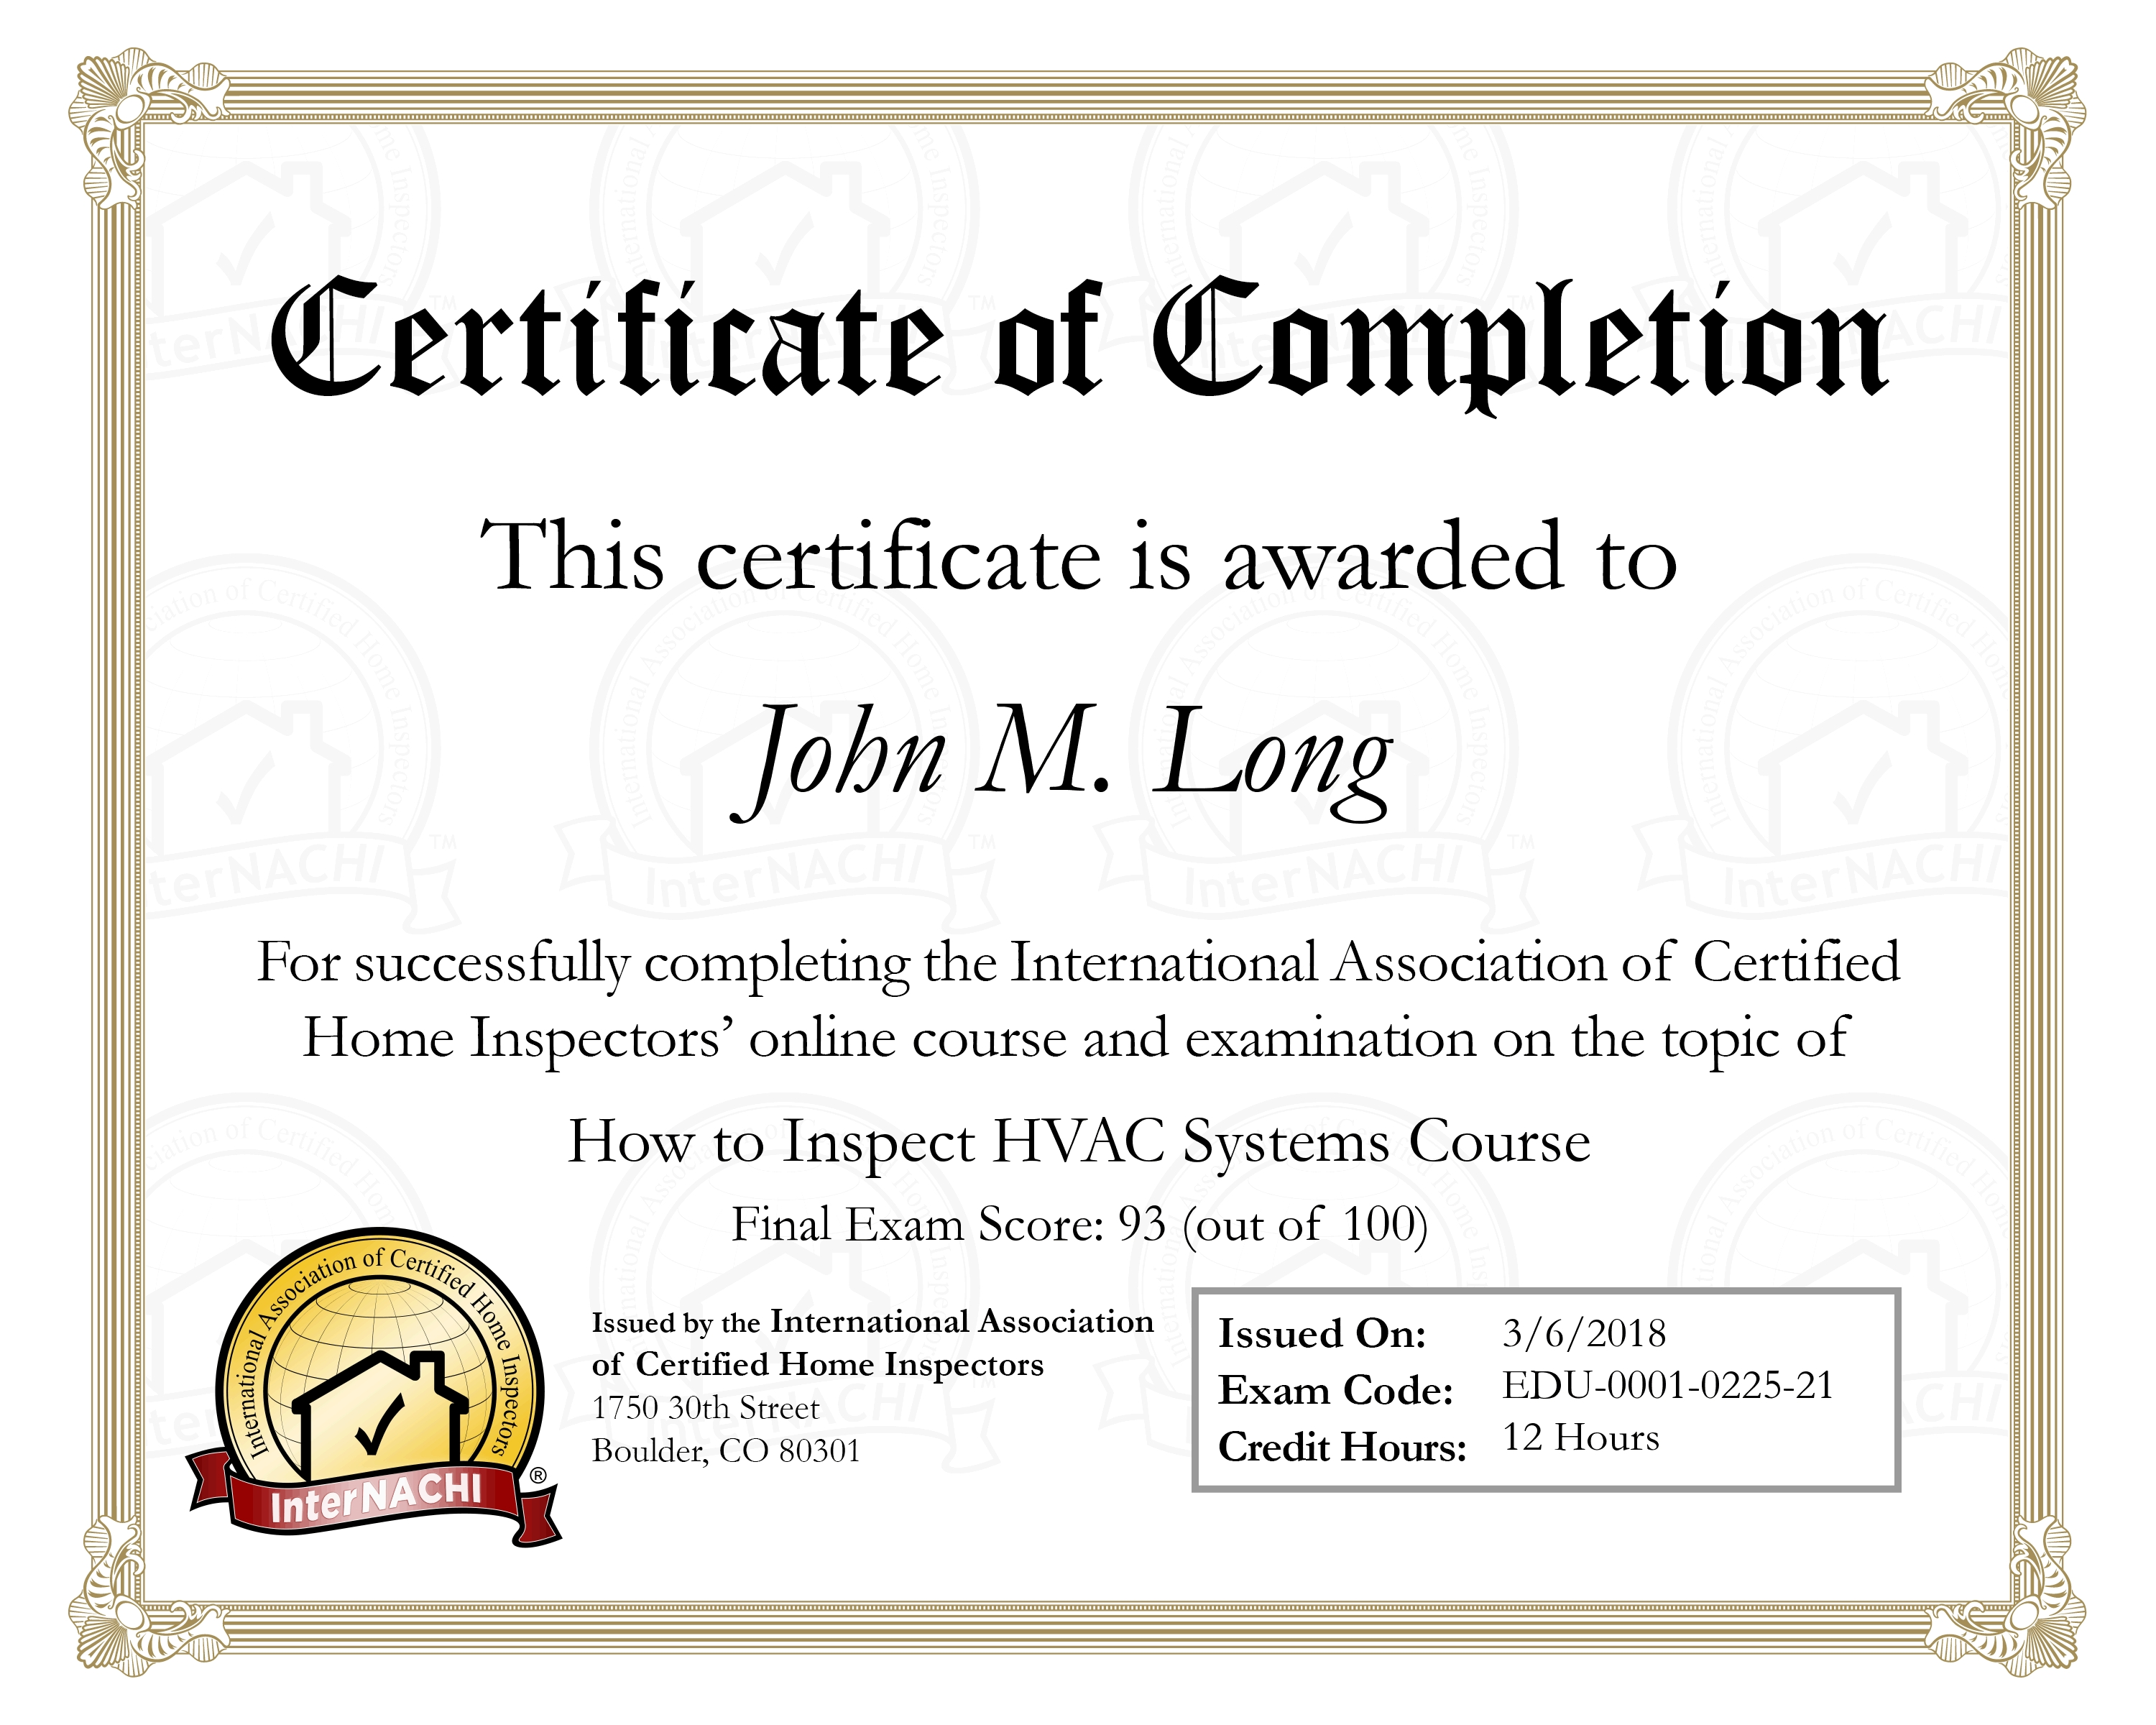 How To Inspect Hvac Systemsinternachi Certificate Nw Chicago Home